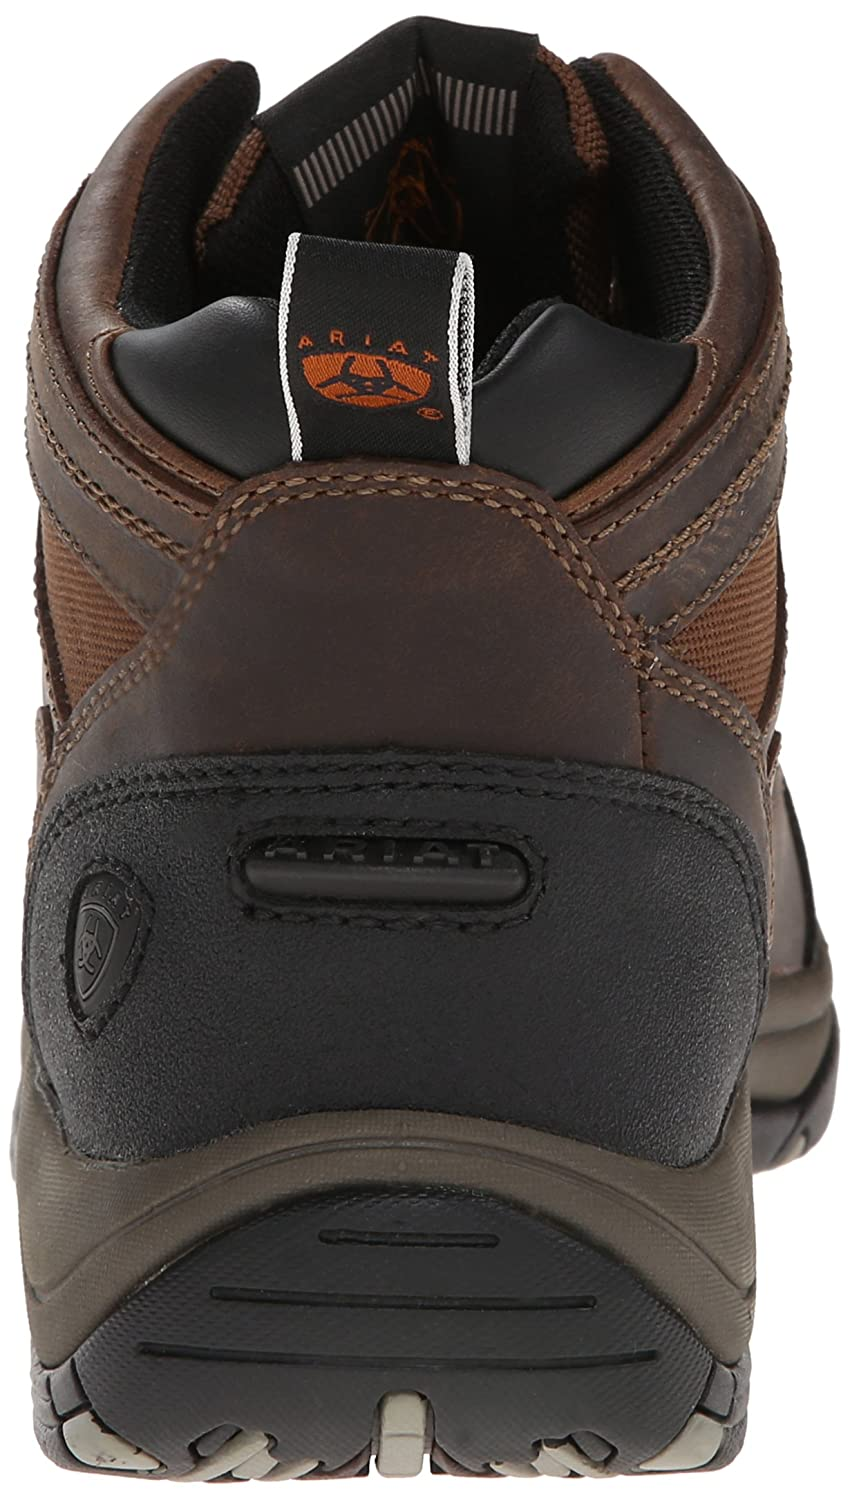 Ariat Men's Terrain B0044A232A Hiking Boot B0044A232A Terrain Boots 5b3f68